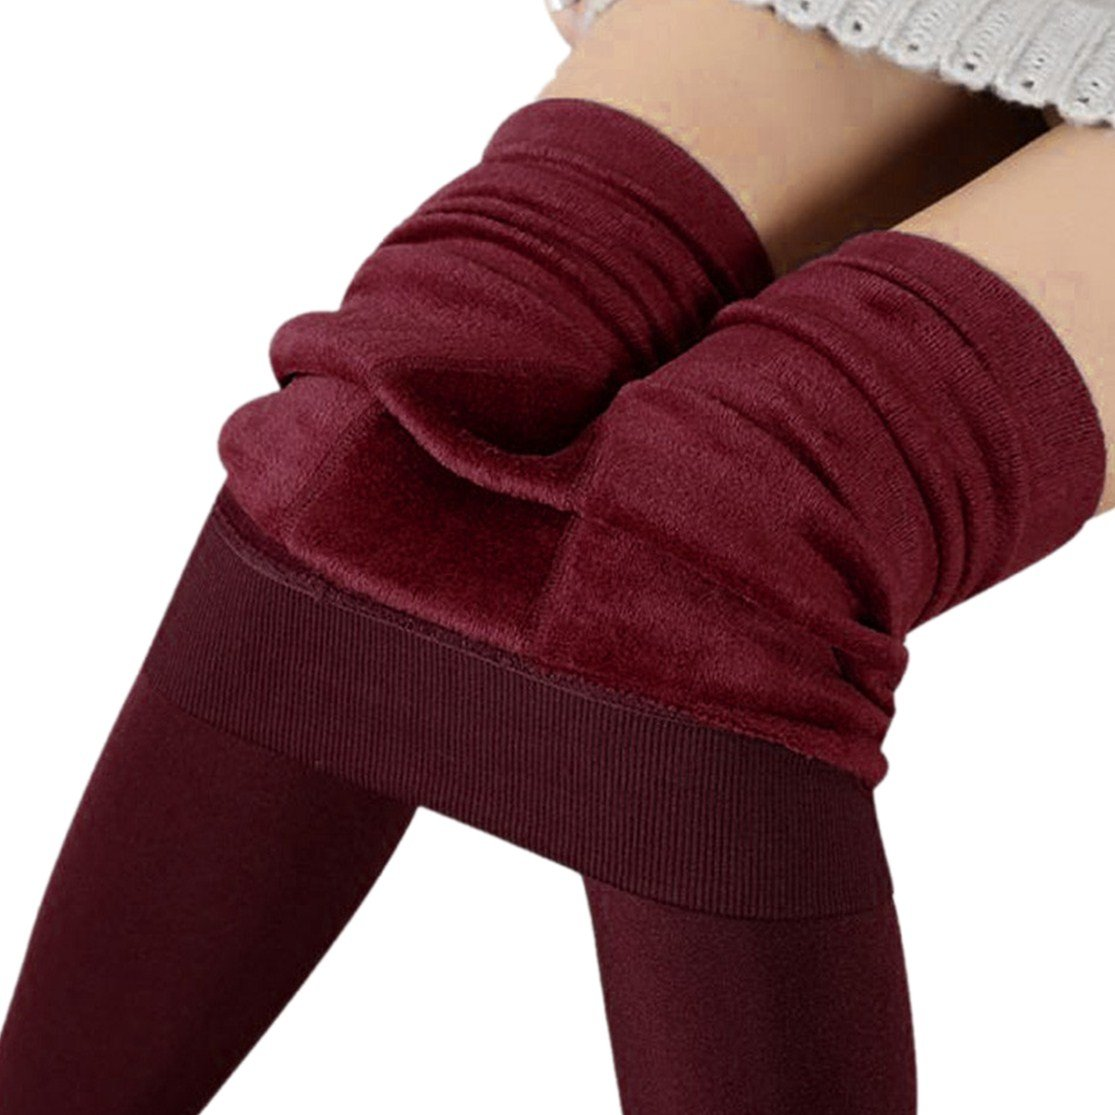 Bluestercool Women Winter Thick Warm Fleece Lined Thermal Stretchy Leggings, Ladies Velvet Stretchy Pants